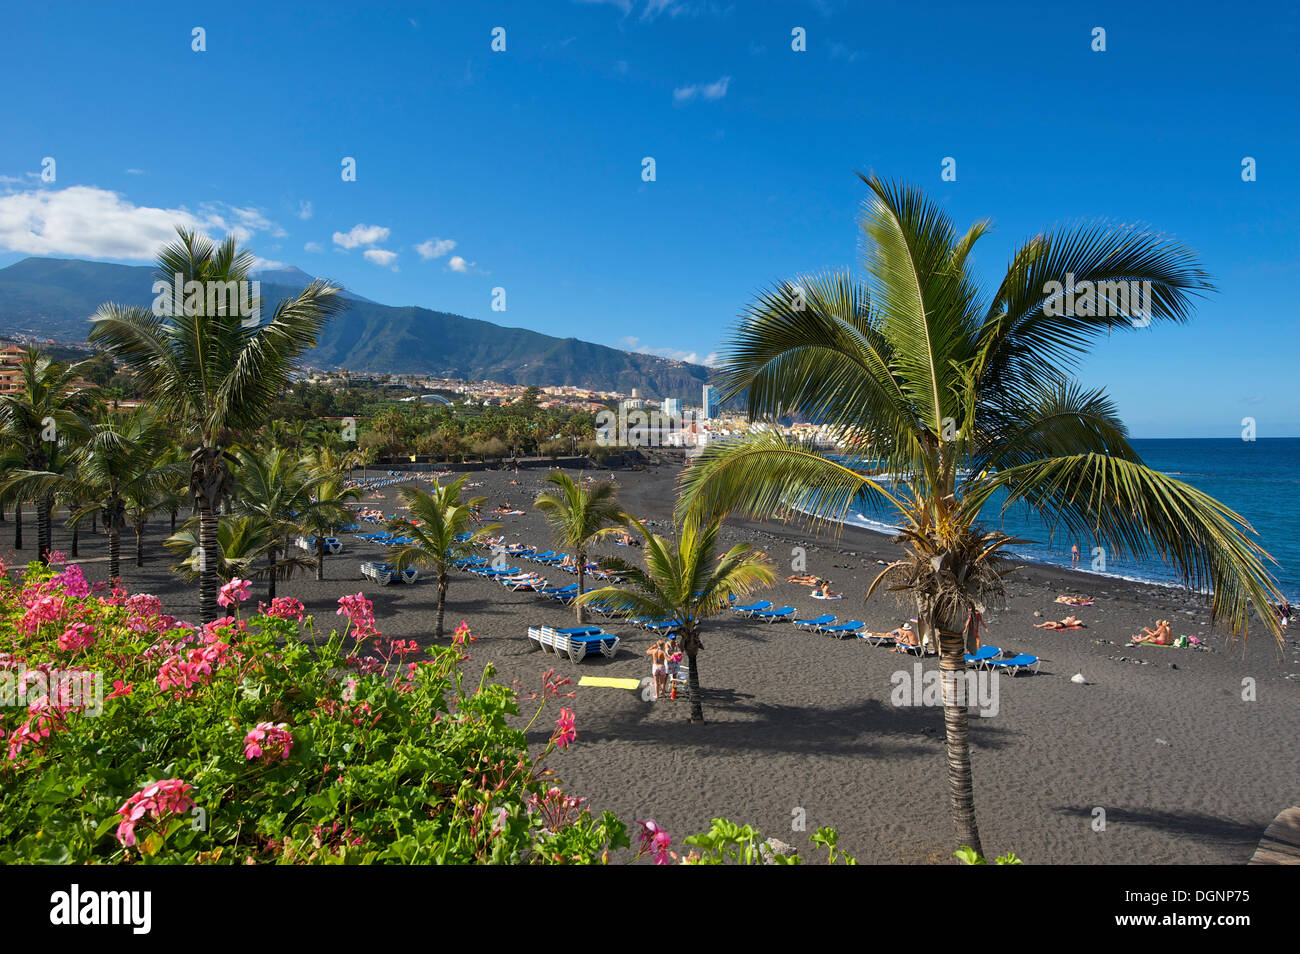 Beach playa jardin with mount teide volcano in puerto de la cruz stock photo royalty free - Playa puerto de la cruz tenerife ...